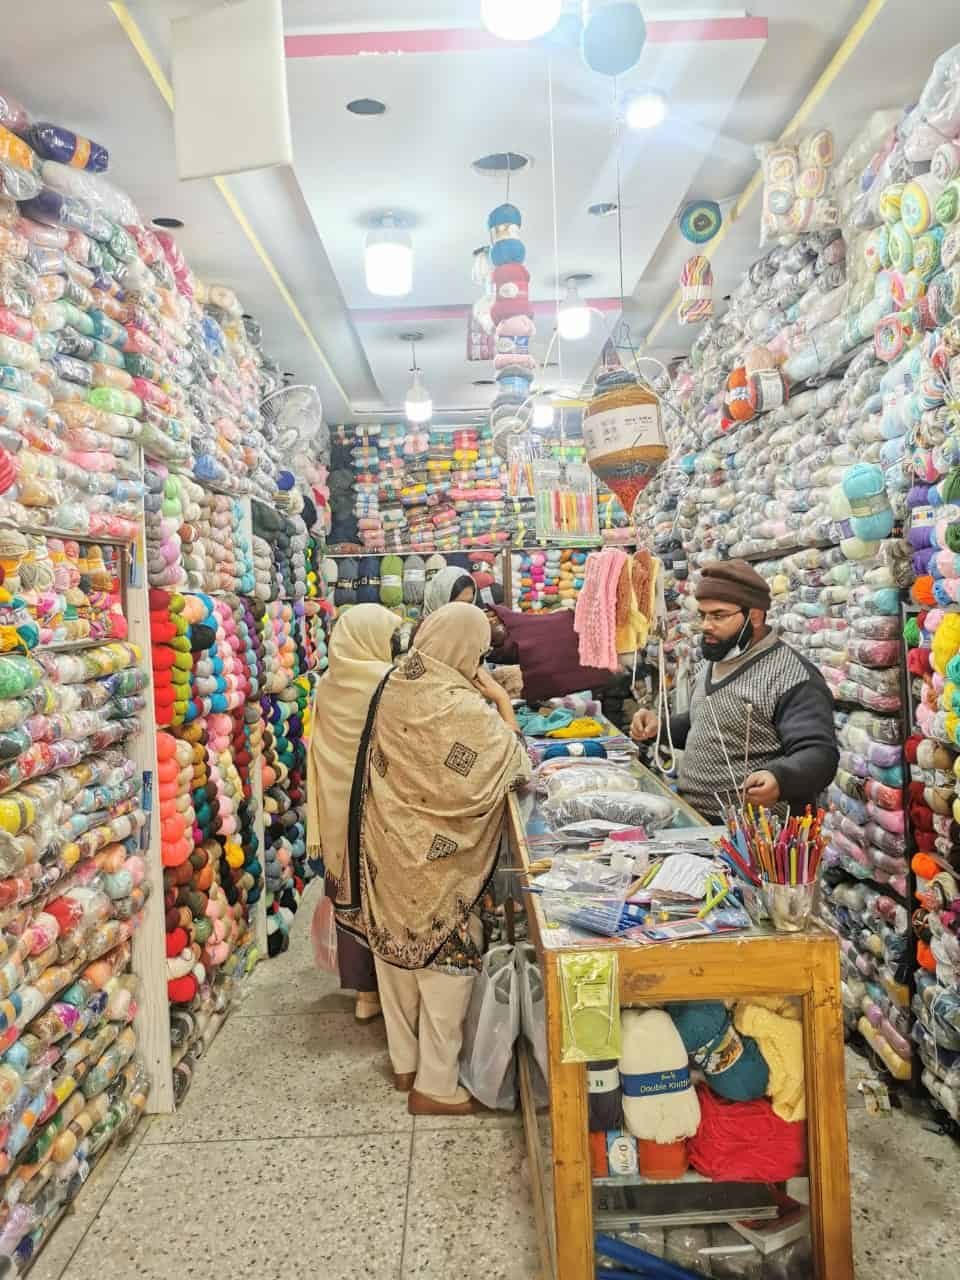 A Pakistani man attends to customers in a yarn shop.